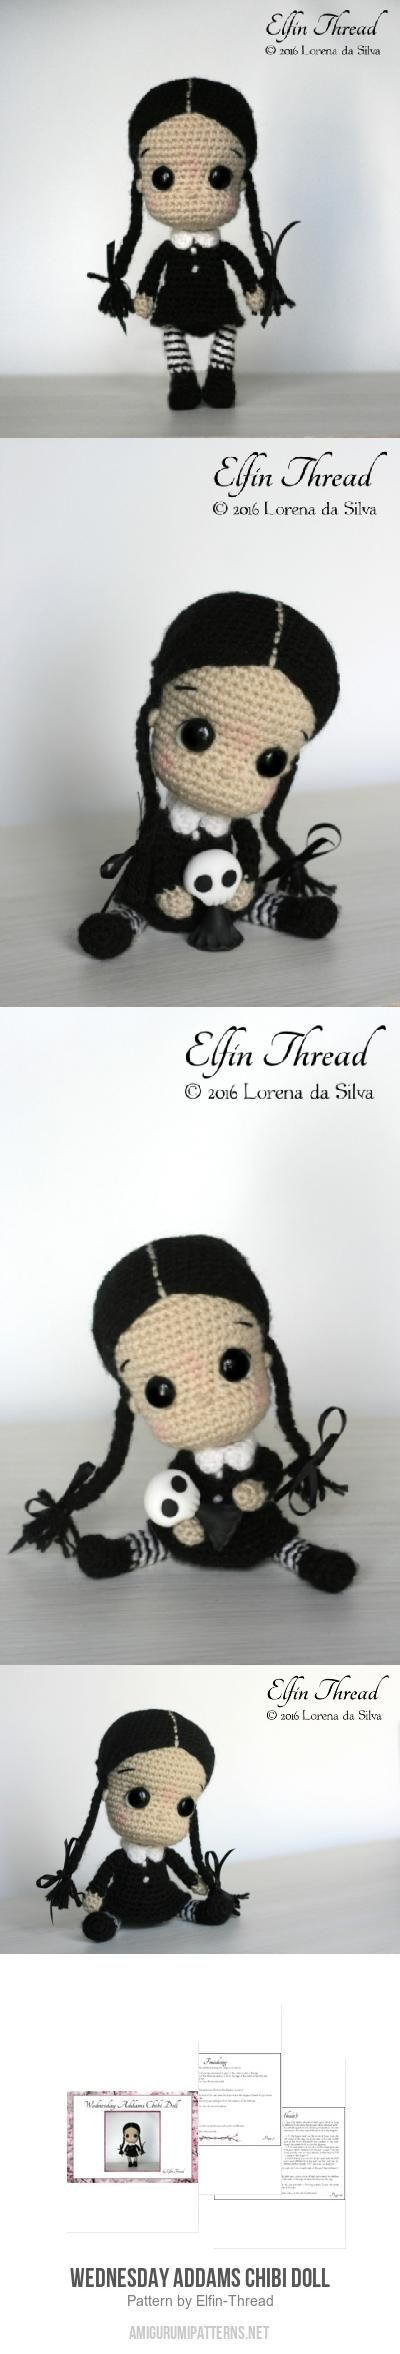 Wednesday Addams Chibi Doll amigurumi pattern by Elfin Thread ...